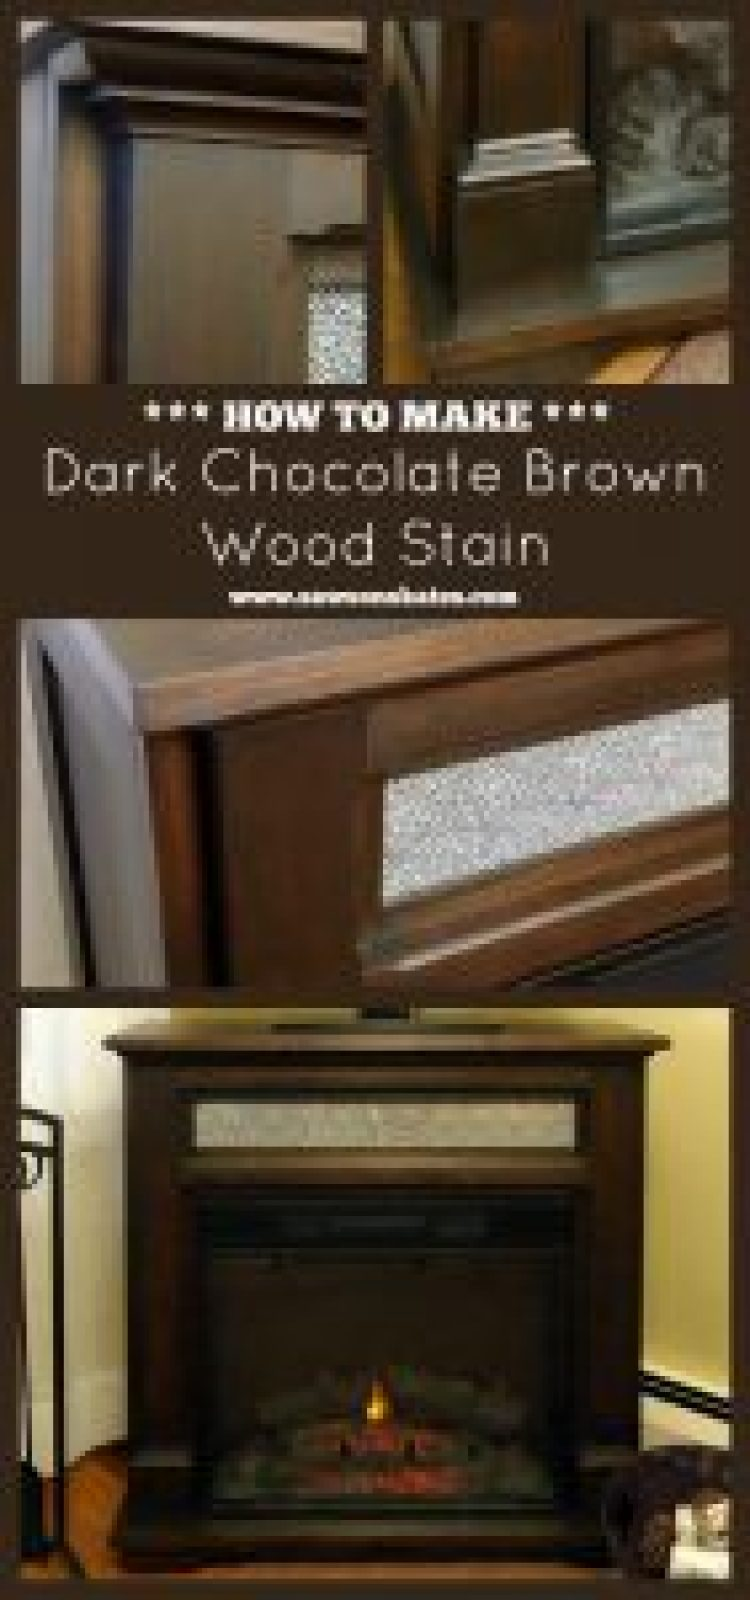 How to make dark chocolate brown wood stain - www.sawsonskates.com